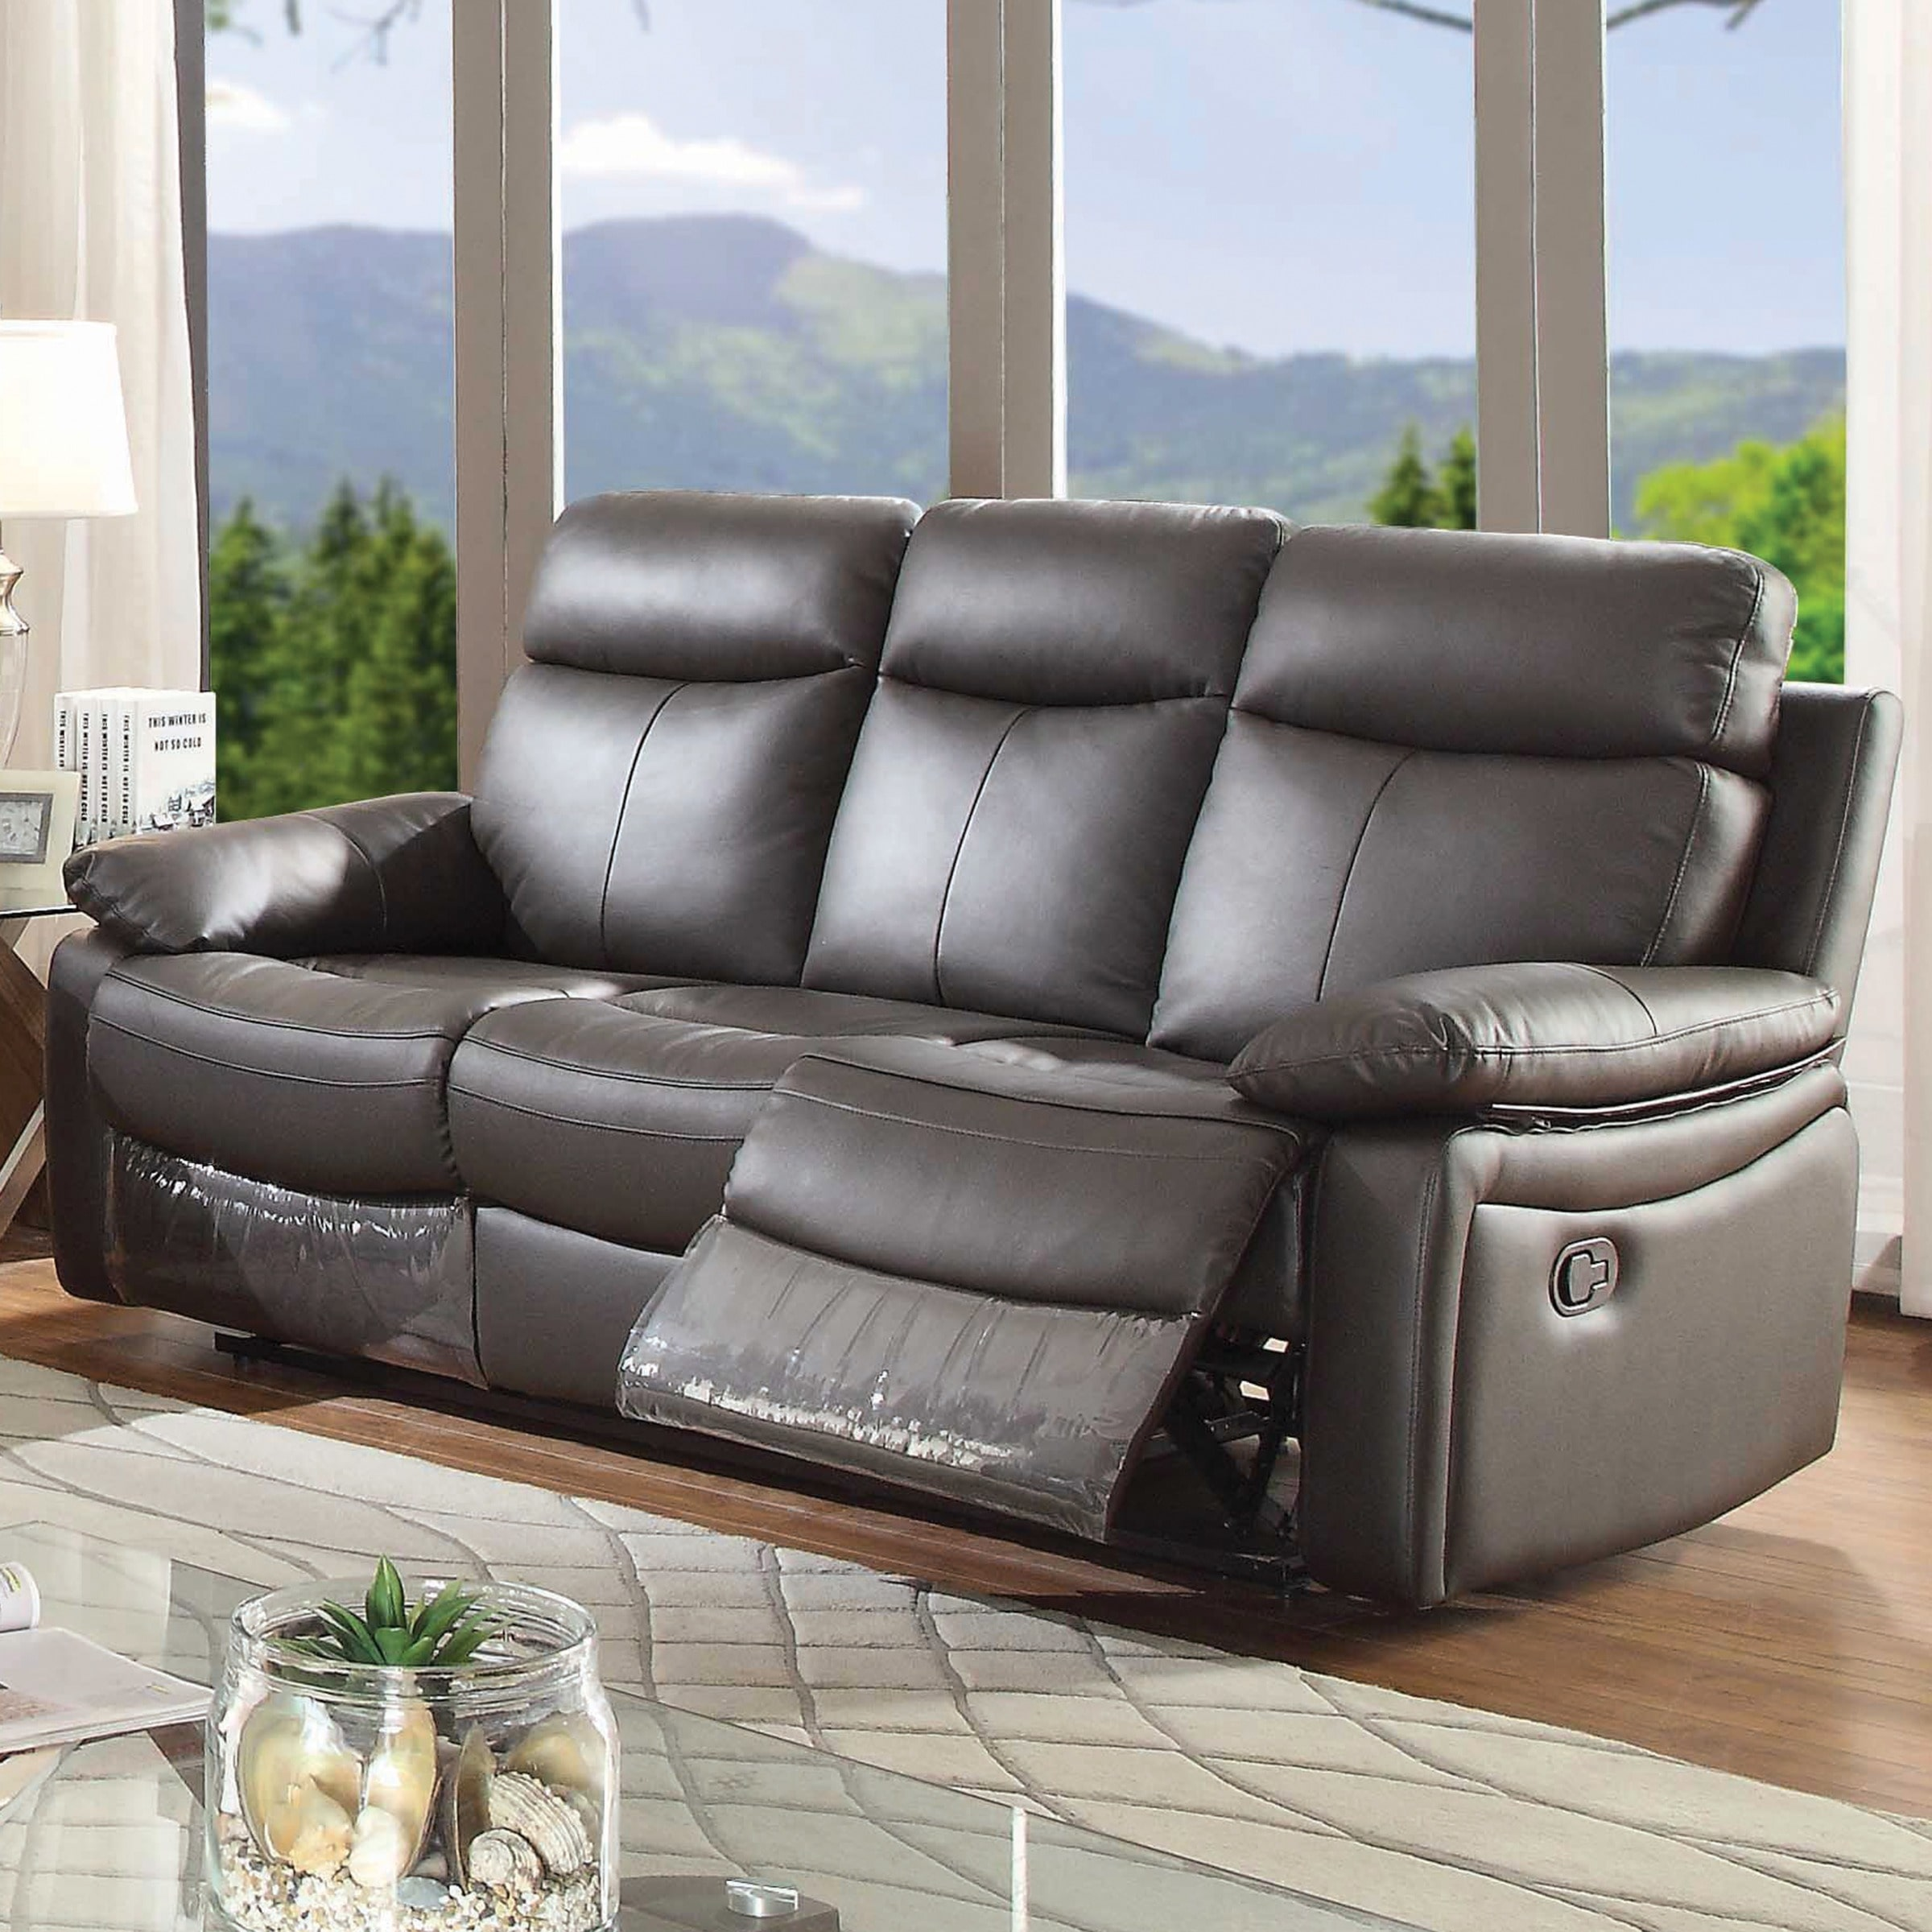 ryker reclining sofa and loveseat 2 piece set old hollywood glam round ac pacific leather walmart com